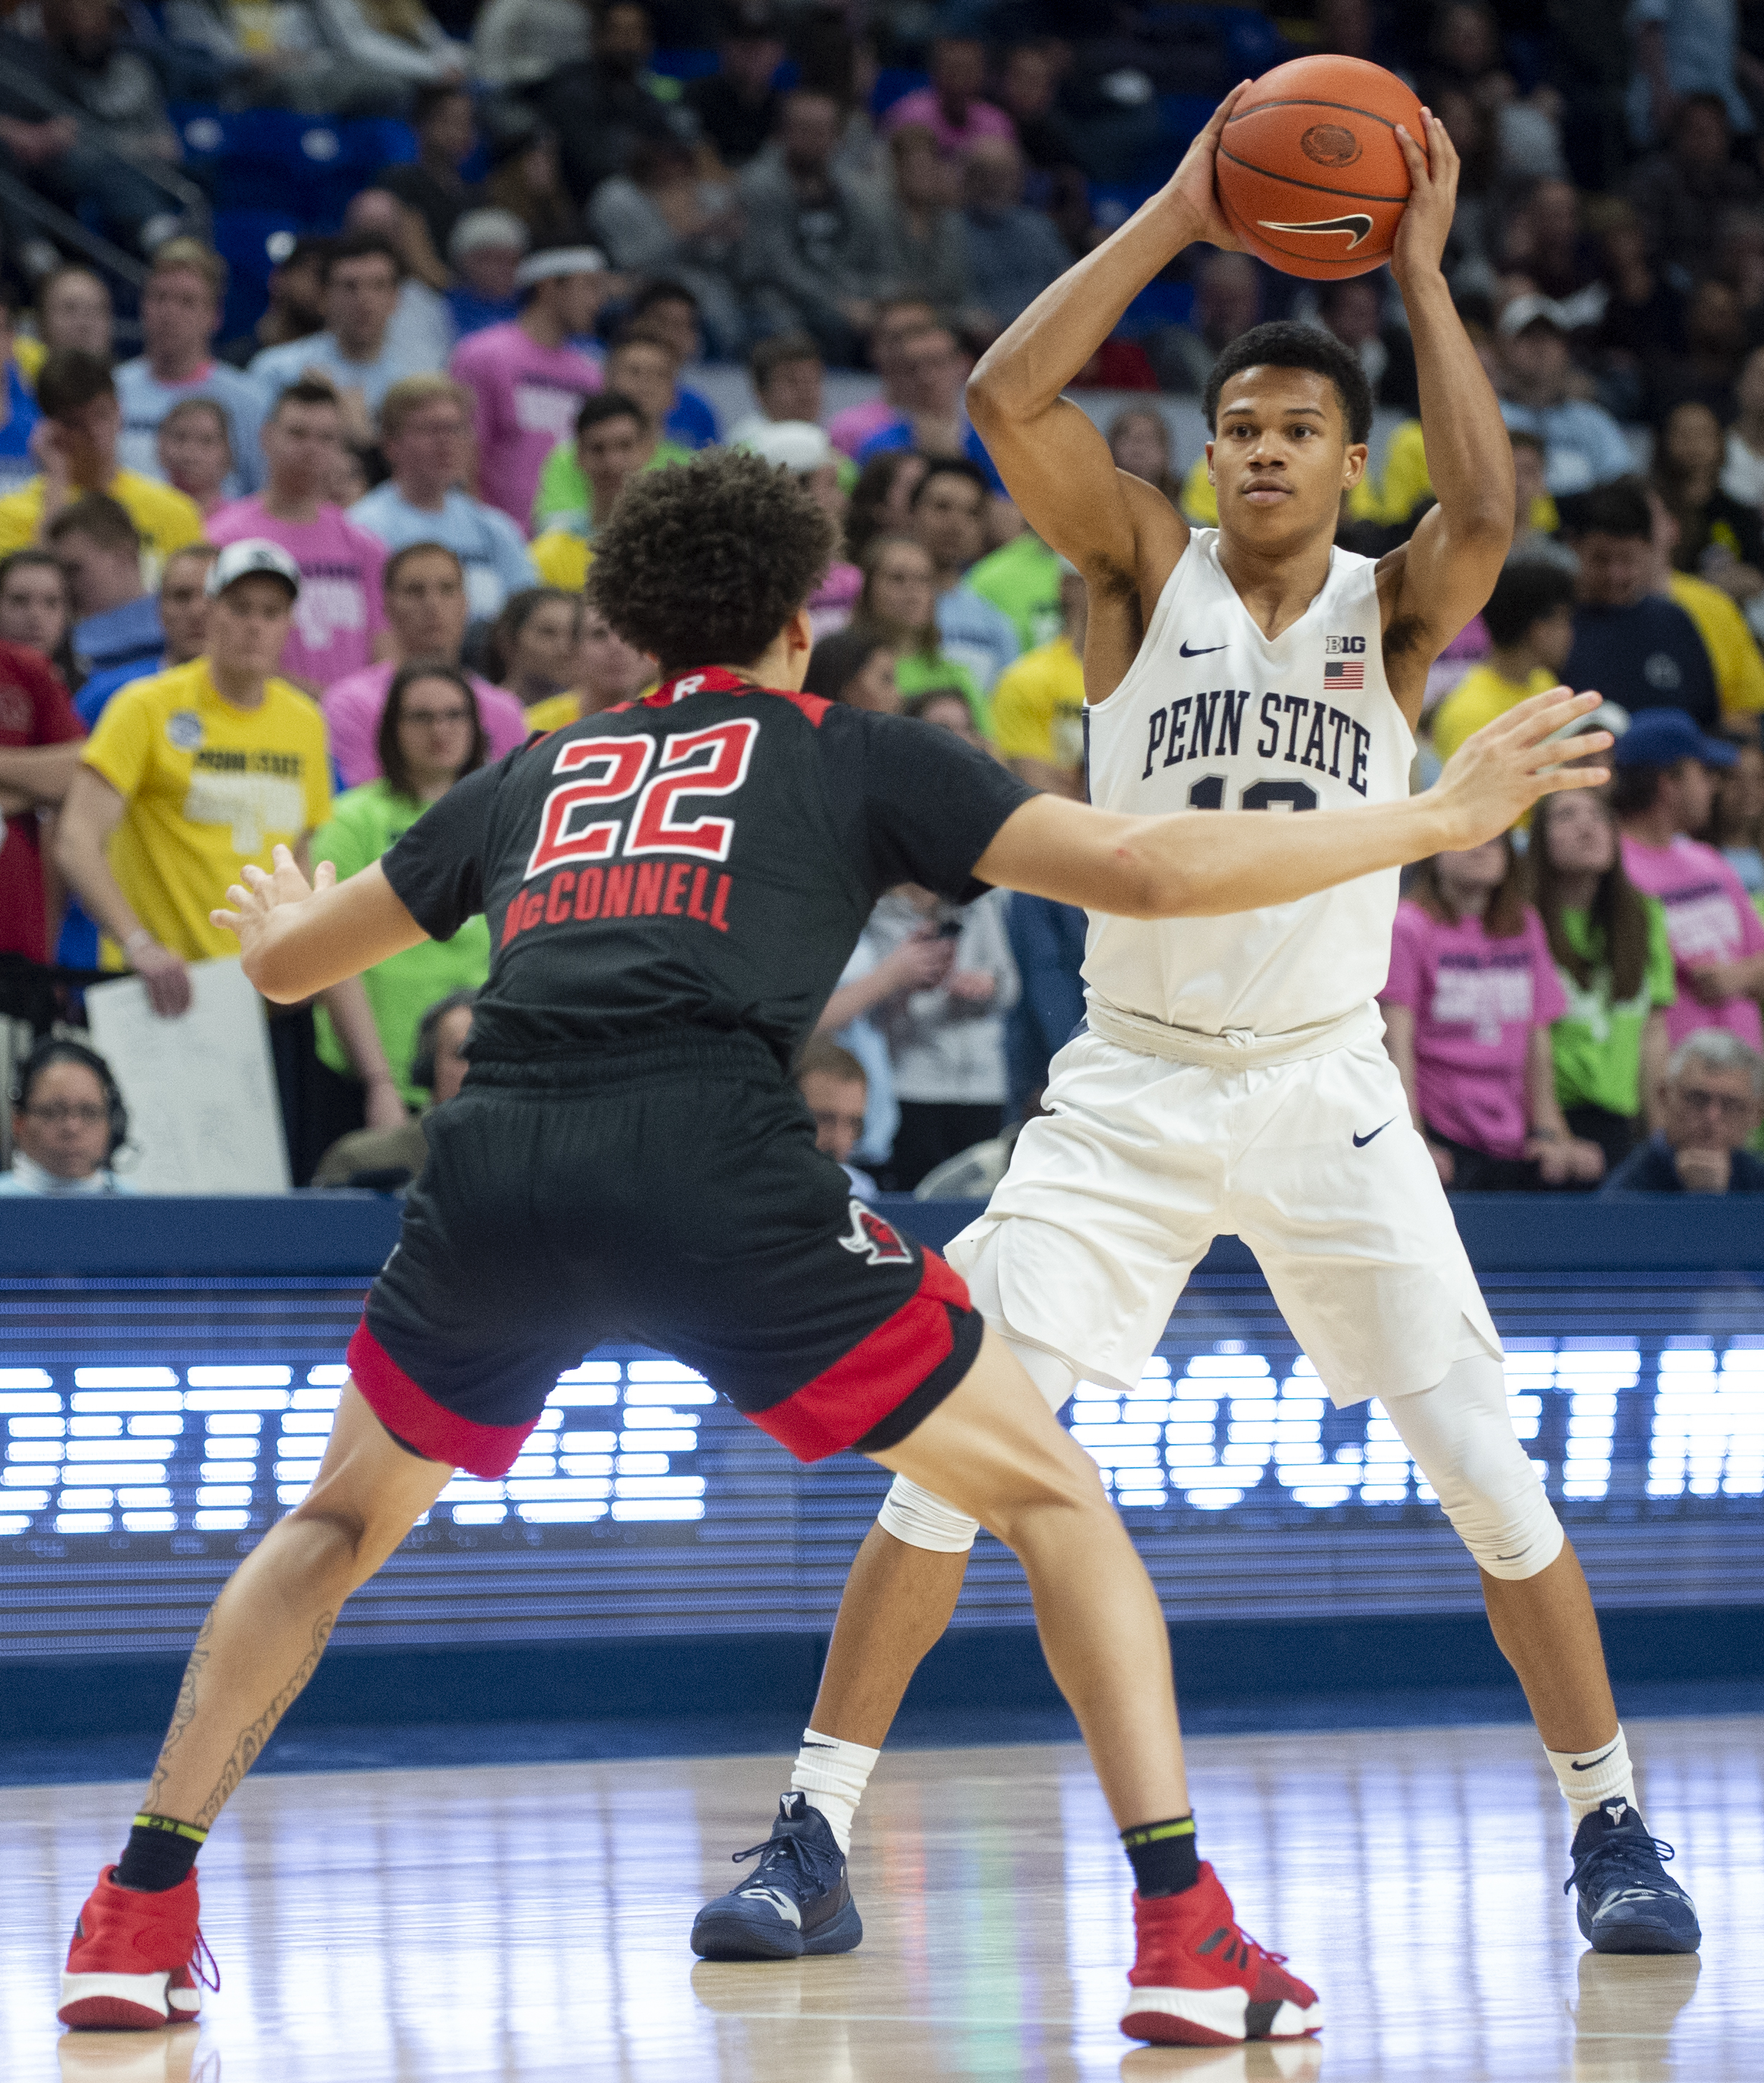 Guard Rasir Bolton (13) looks for a pass during their game against Rutgers at the Bryce Jordan Center on Saturday, Jan. 26, 2019. The Nittany Lions fall to Rutgers 64-60 and stay winless in conference play extending their losing streak to 7 games.